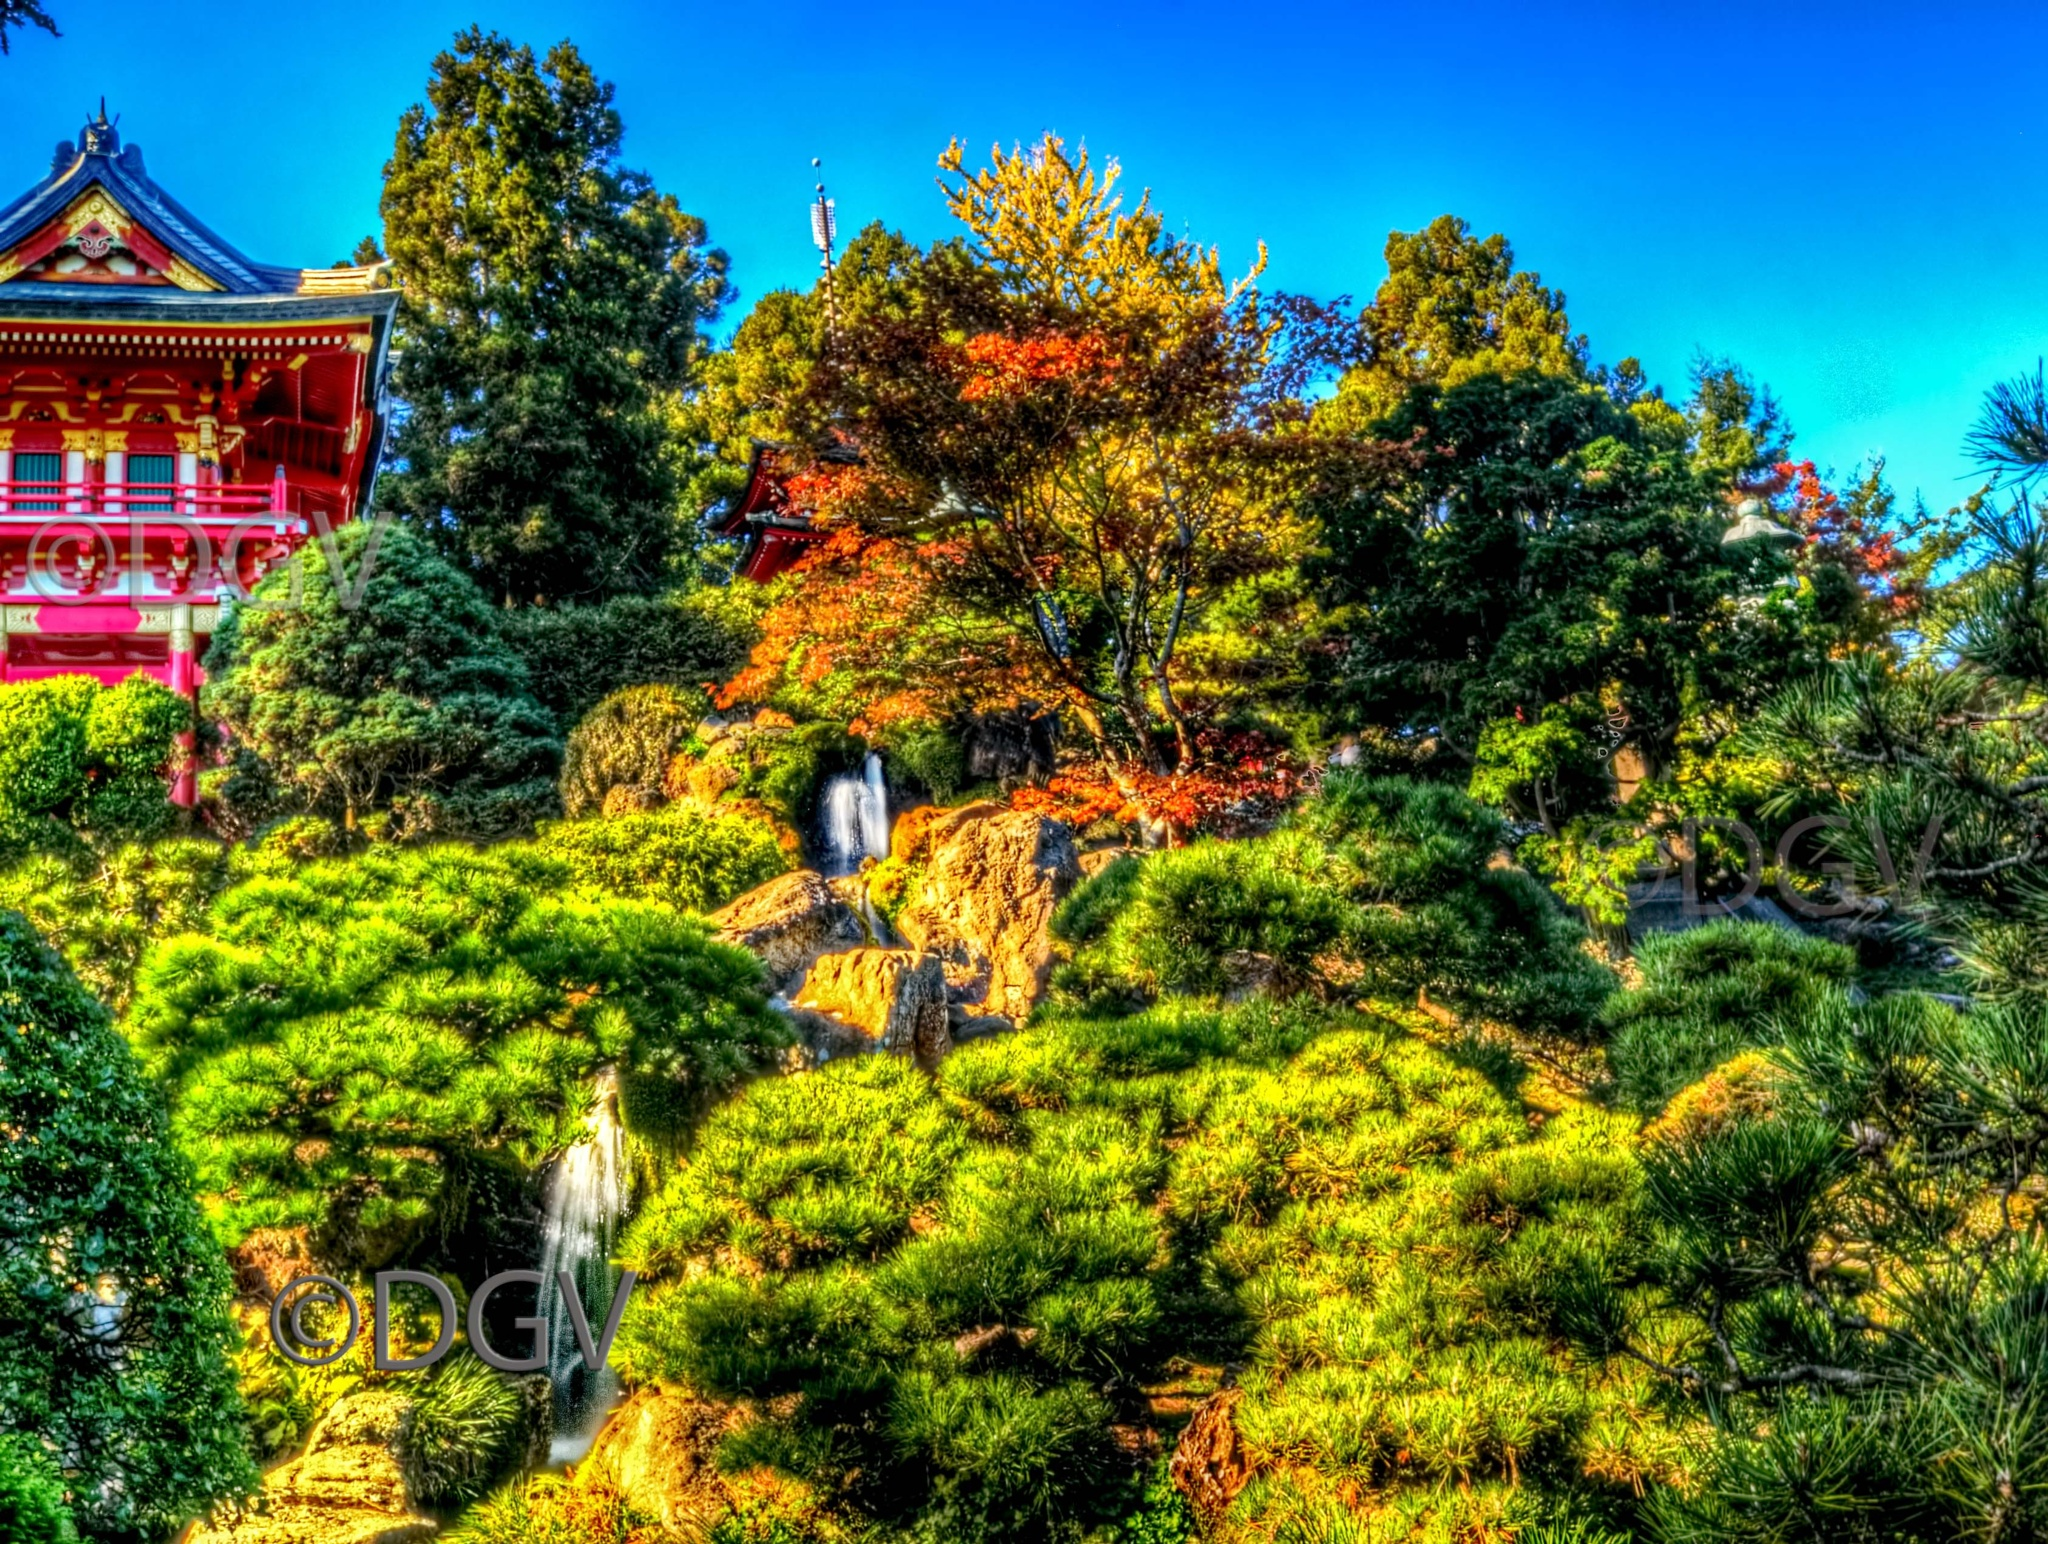 Pagoda,Trees & Water by dgvarch